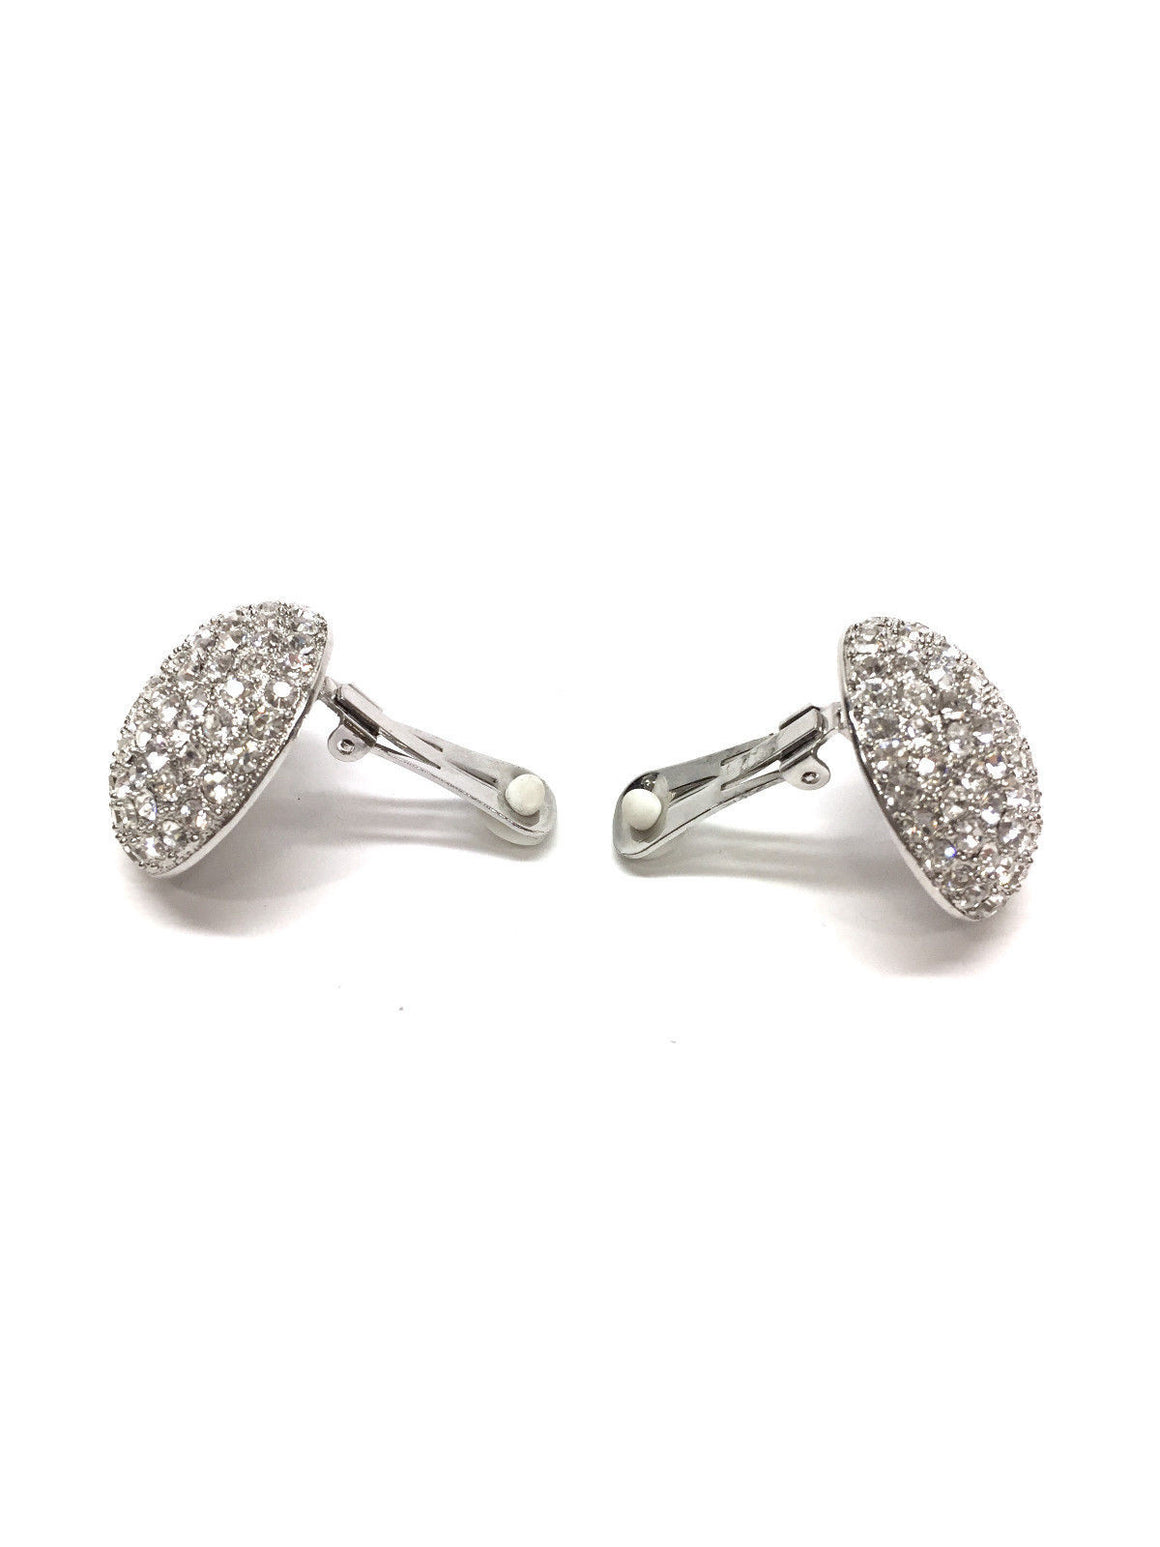 bisbiz.com SCAASI Clear Crystal Pave Dome Button Clip Earrings - Bis Luxury Resale